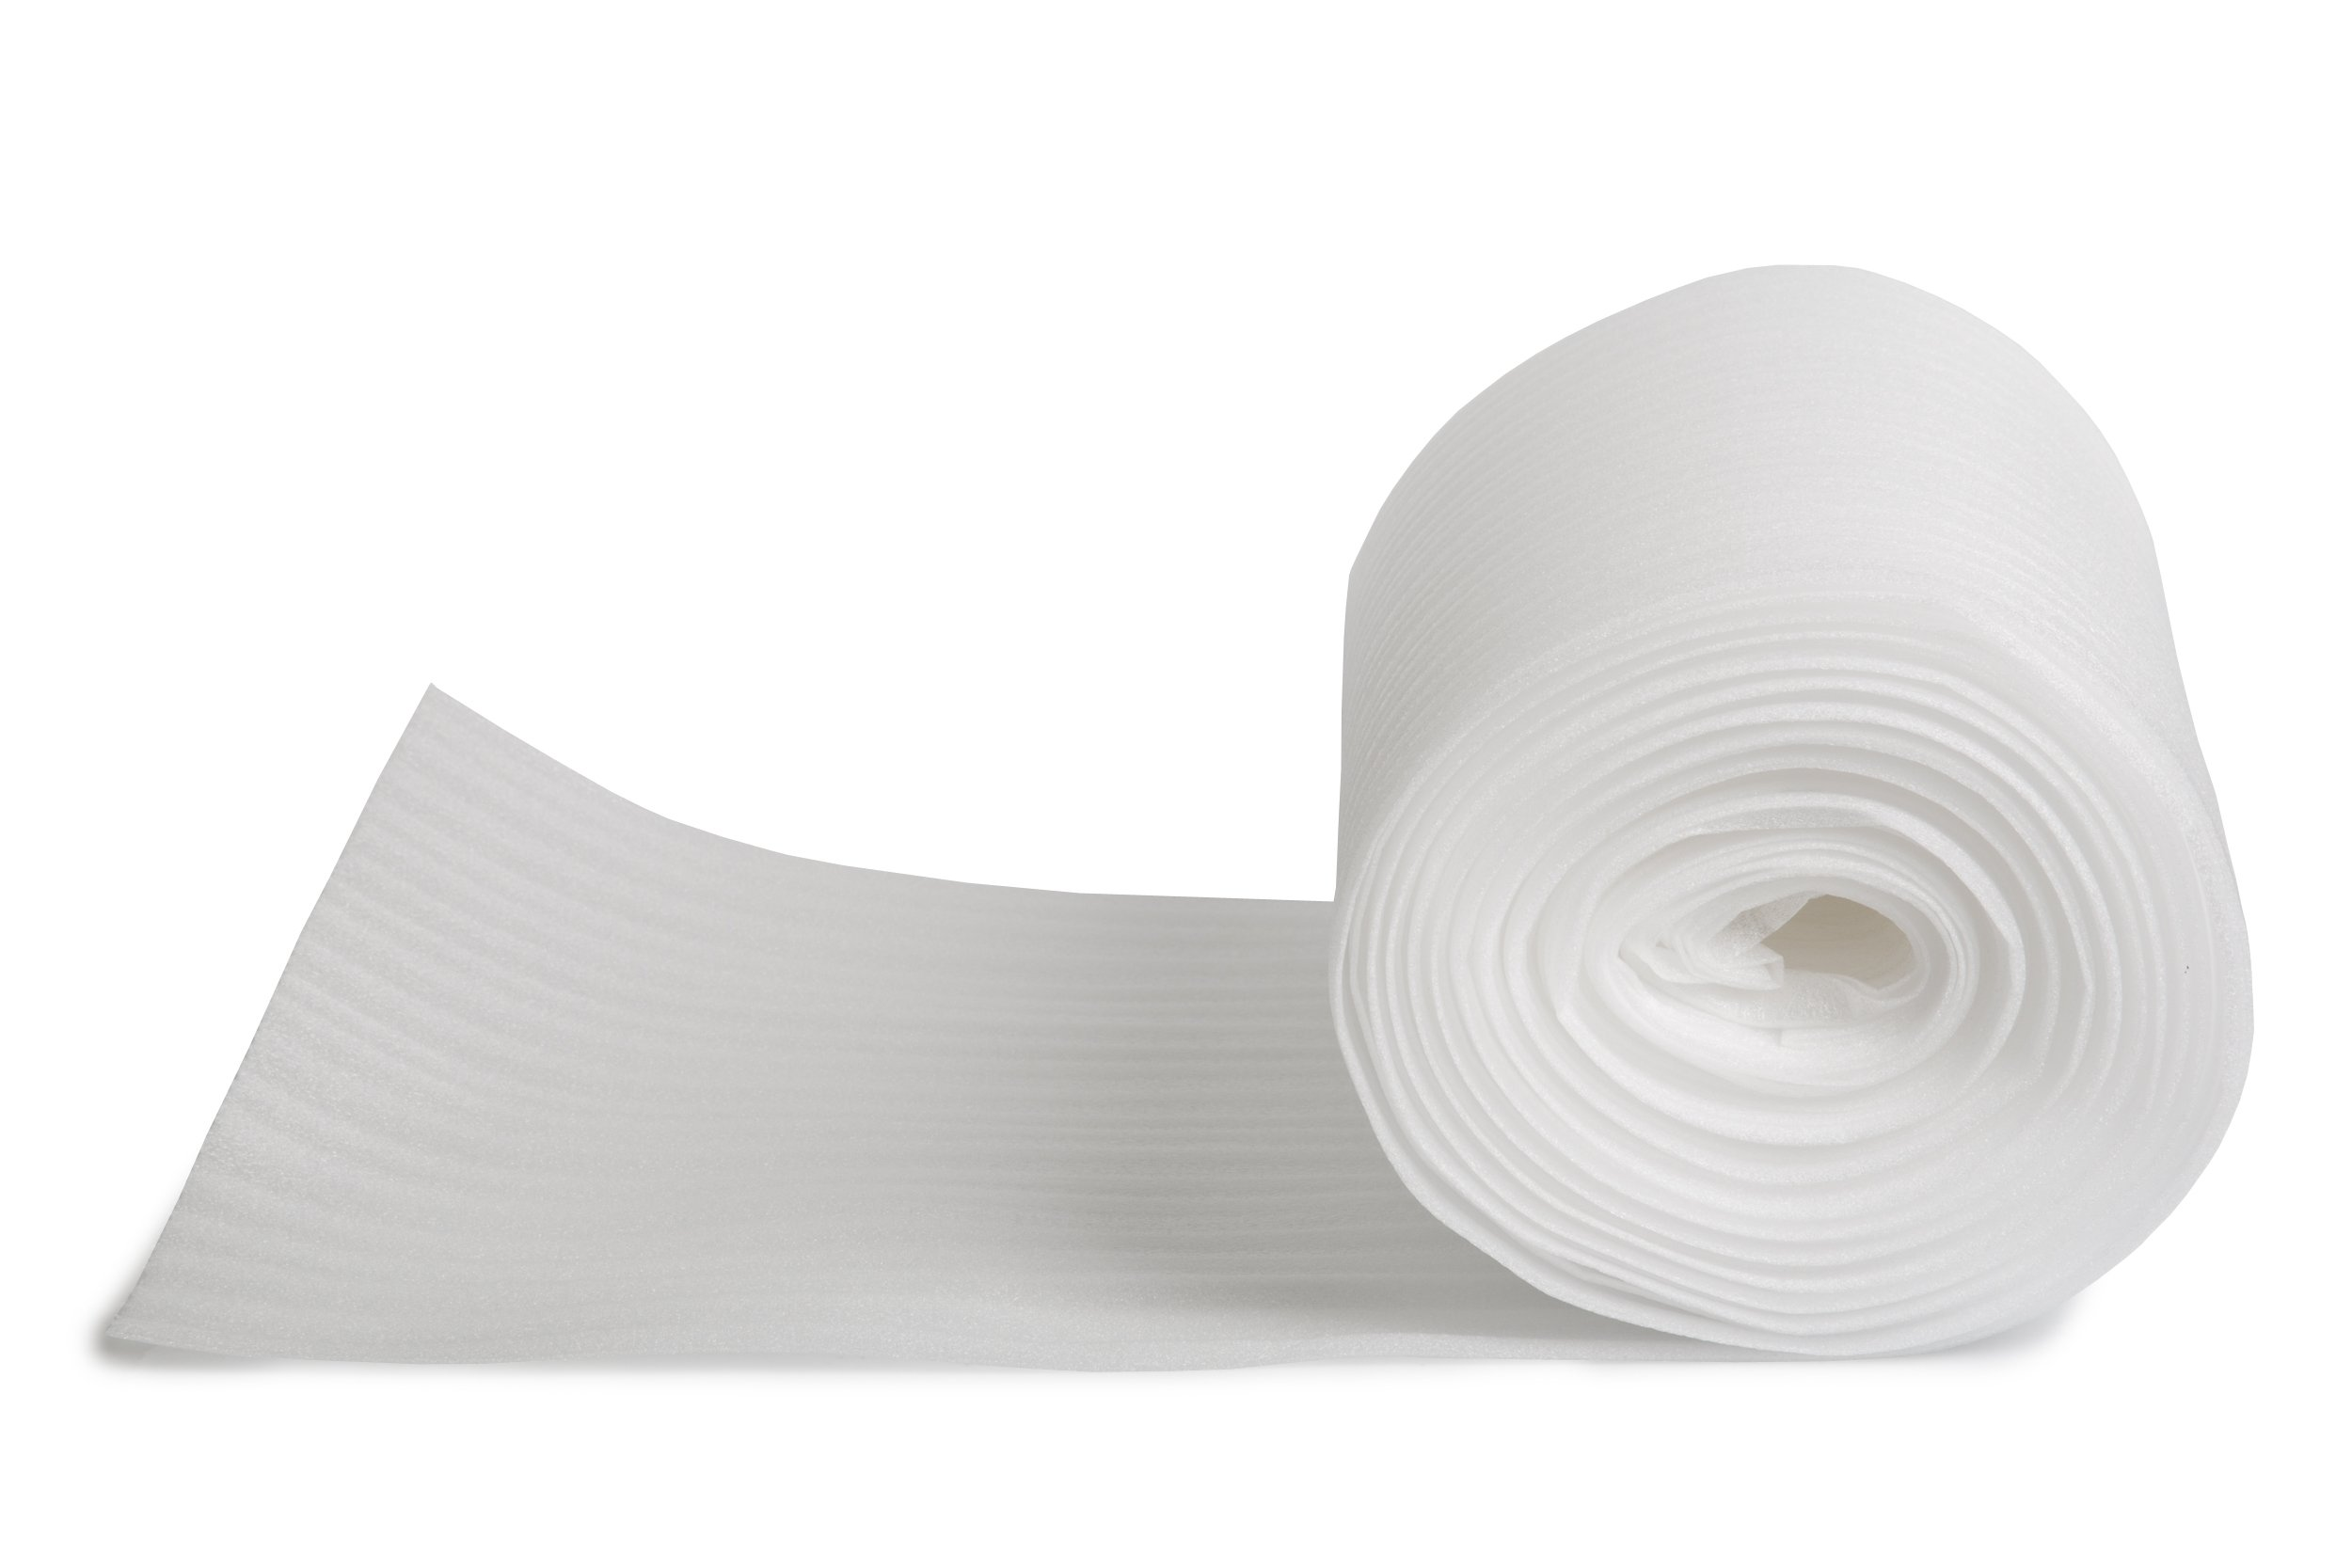 Packing Materials Foam Roll 12'' Wide x 70' Long X 1/16 Thick • Perforated Every 12'' • Great for all shipping, mailing, packing and moving needs by Tapix (Image #1)